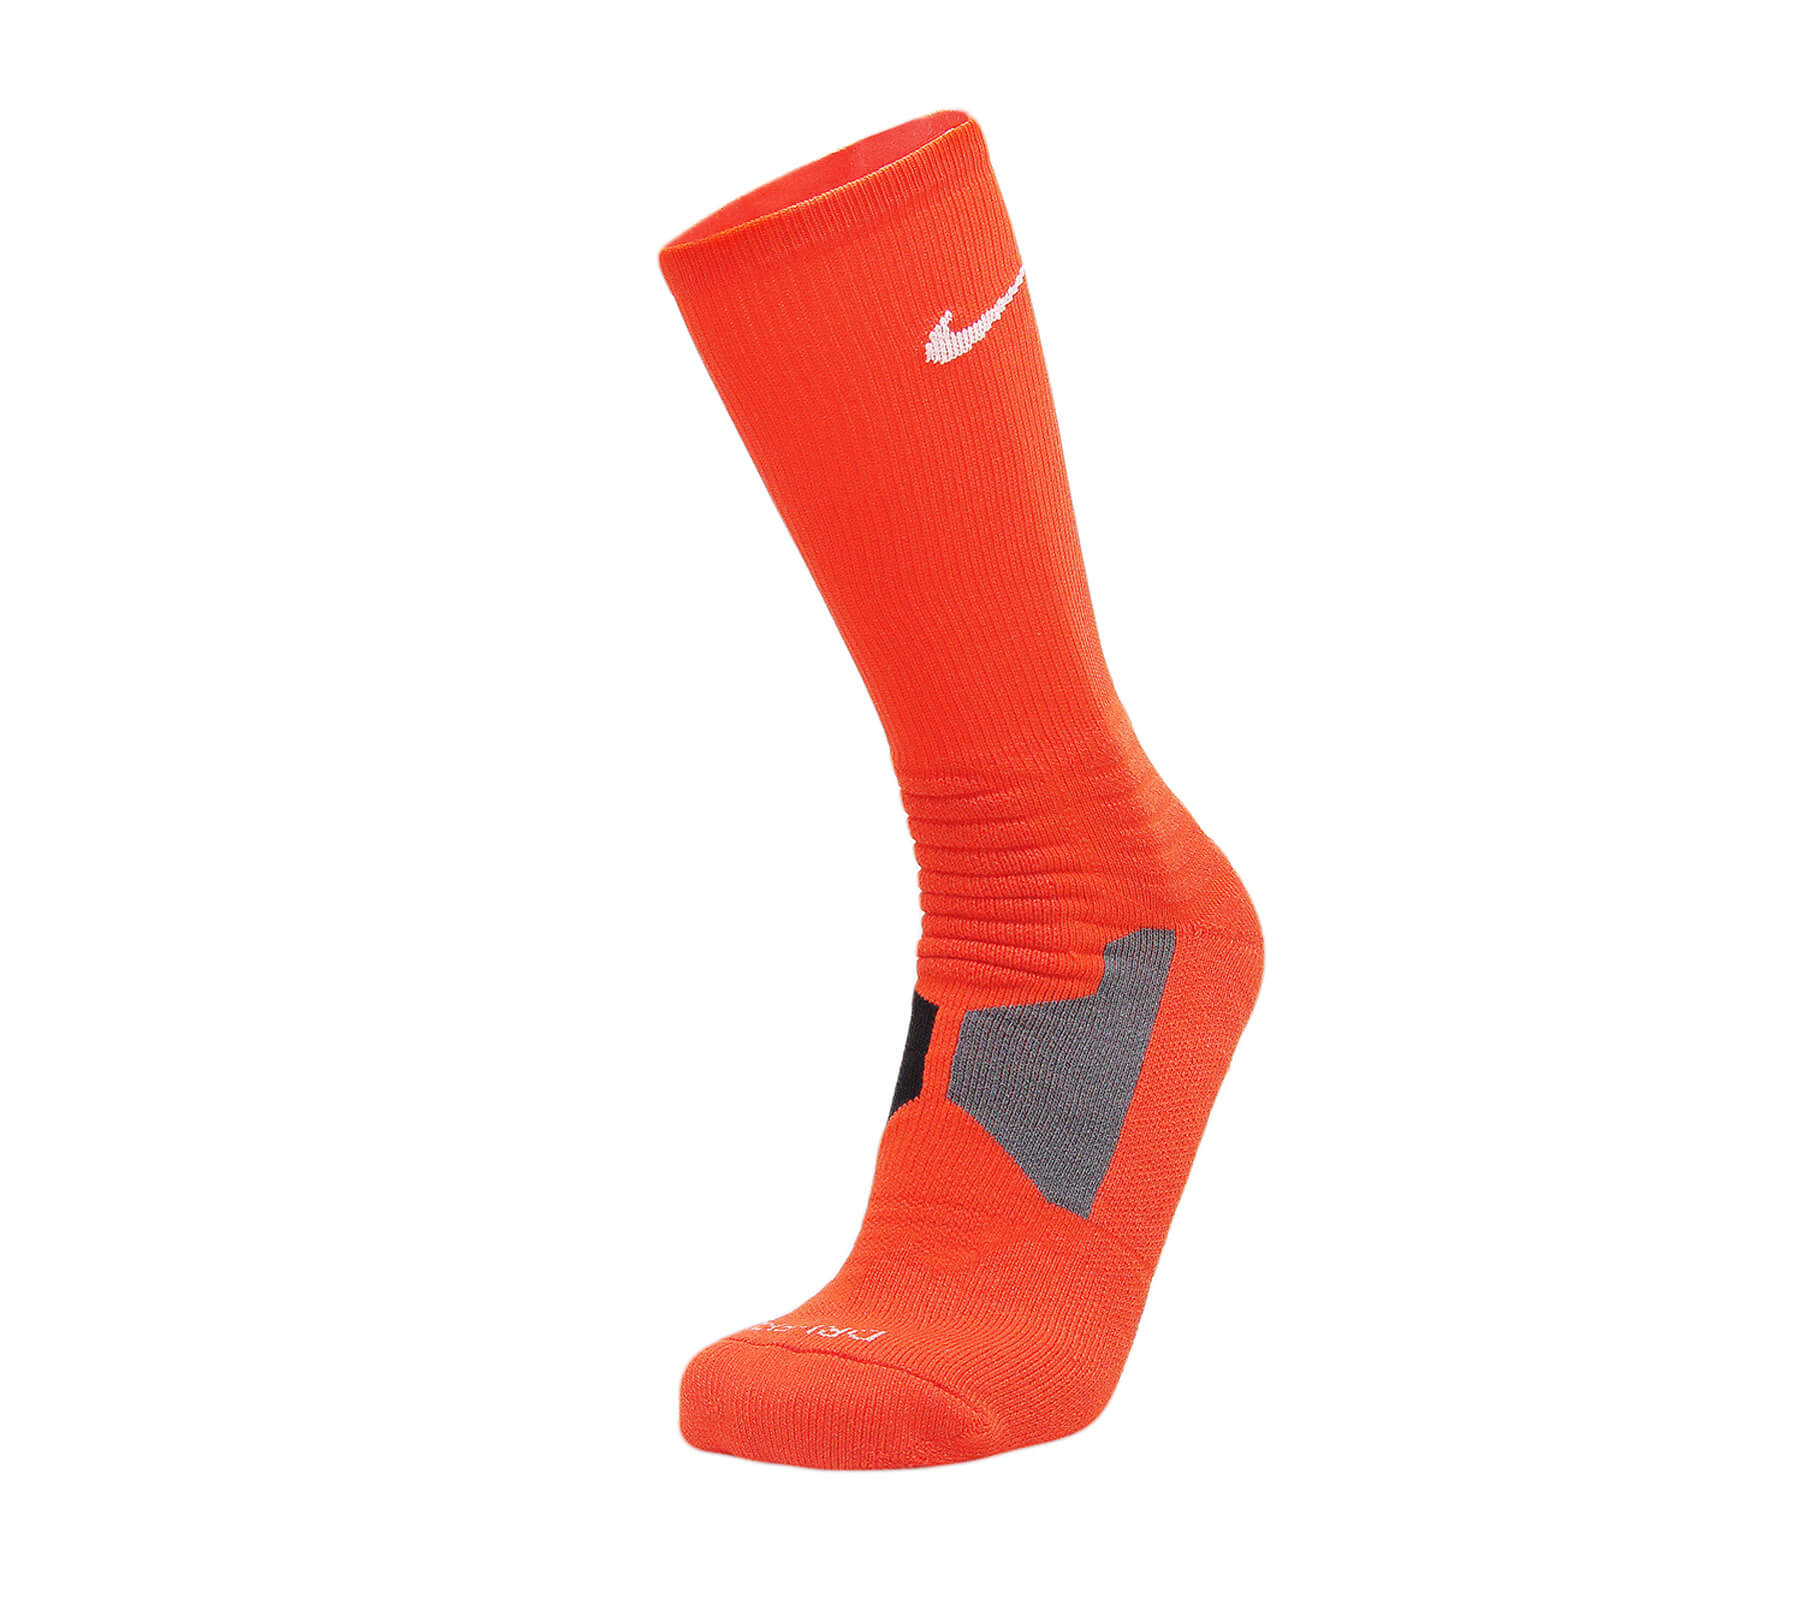 Nike Hyper Elite Basketball Socks Bright Orange White - Pimp Kicks